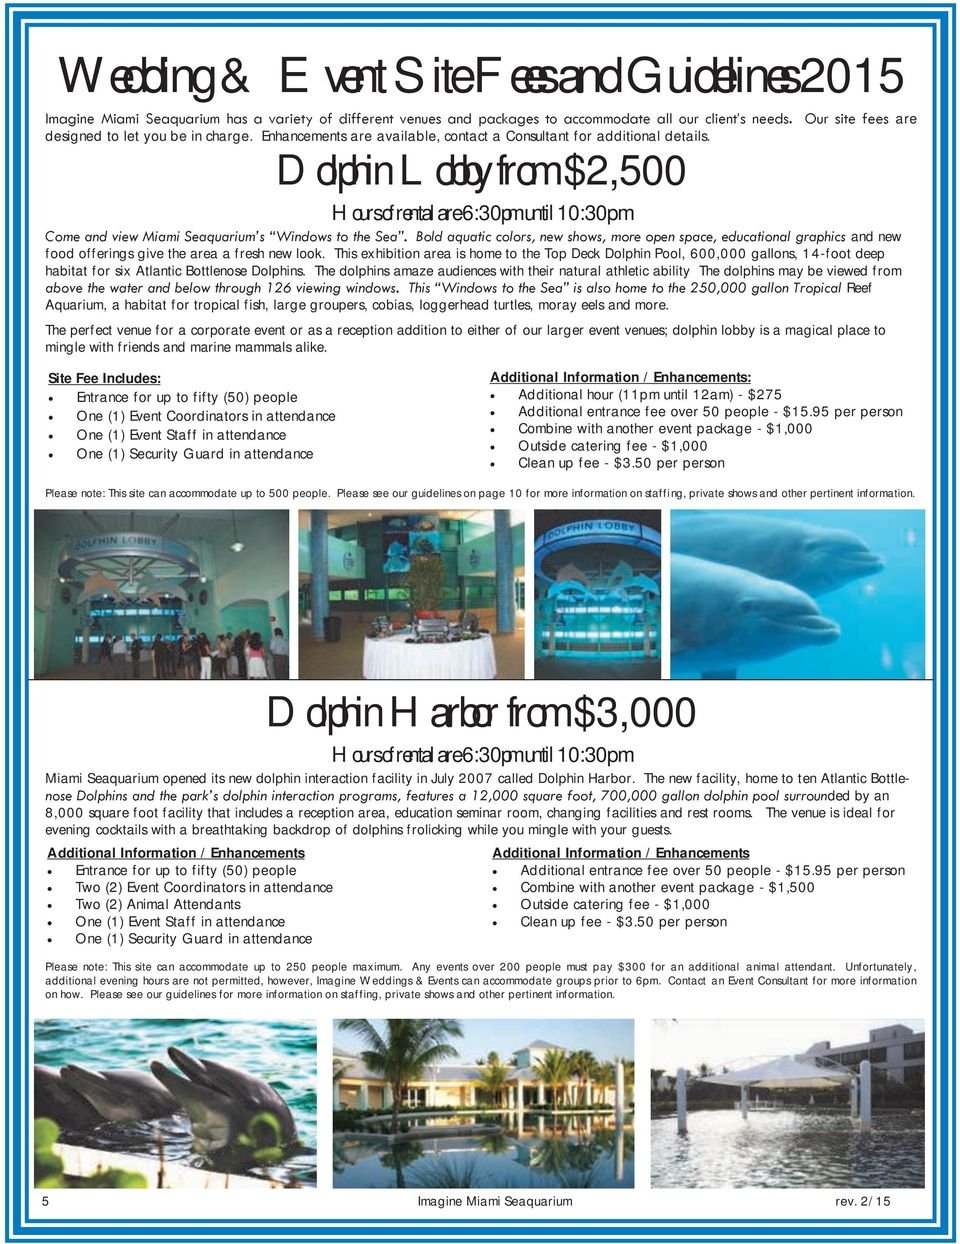 Dolphin Lobby from $2,500 Hours of rental are 6:30pm until 10:30p m Come and view Miami Seaquarium s Windows to the Sea.